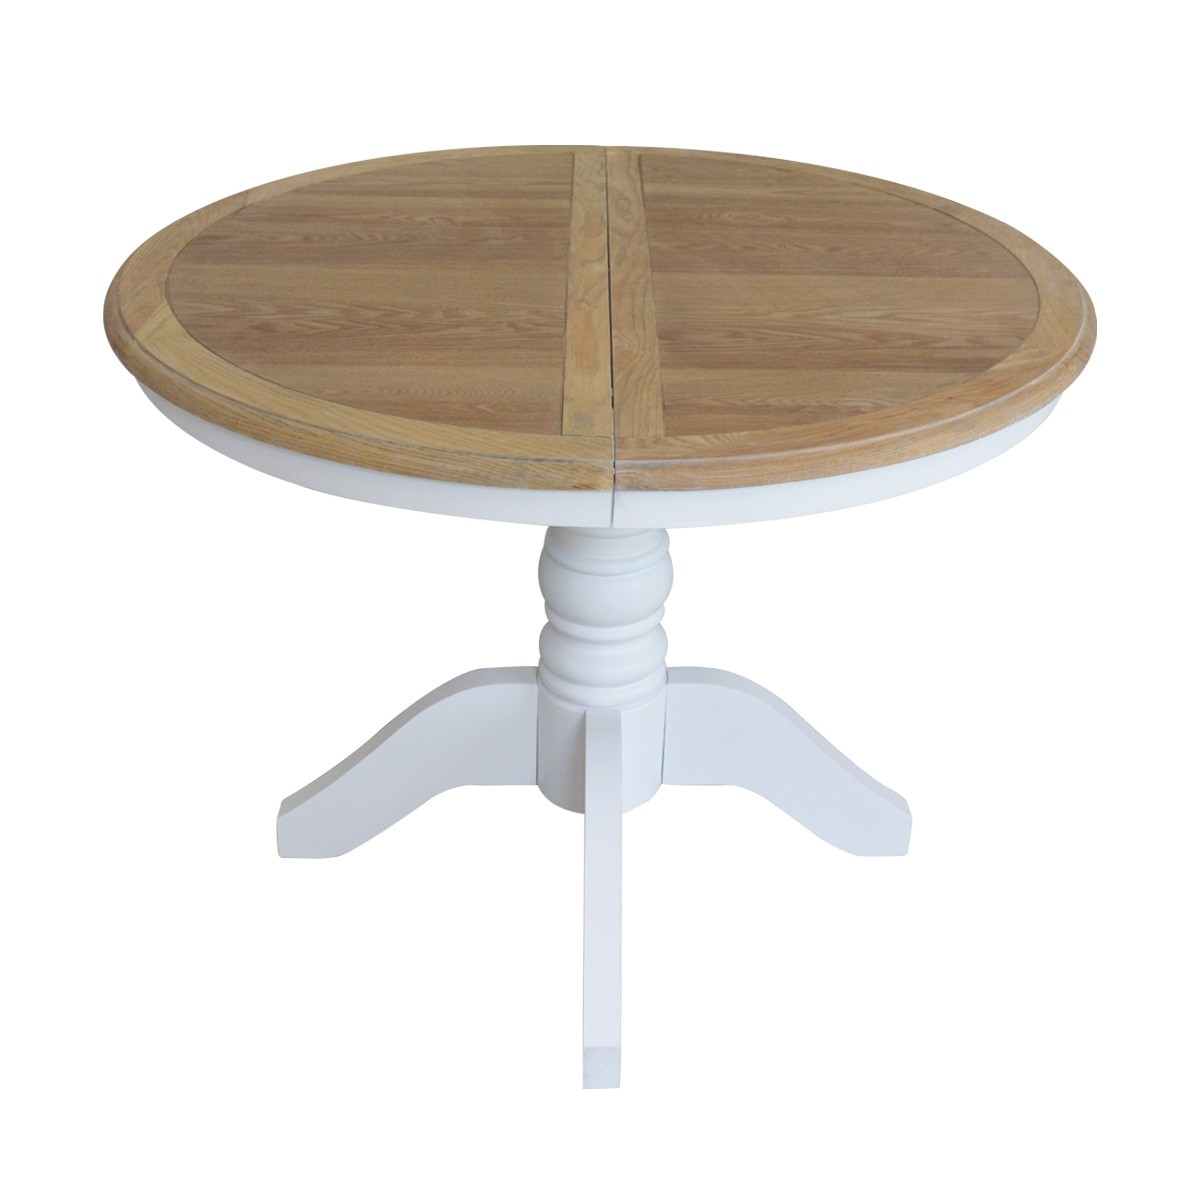 French Provincial Classic White Extendable Round Dining